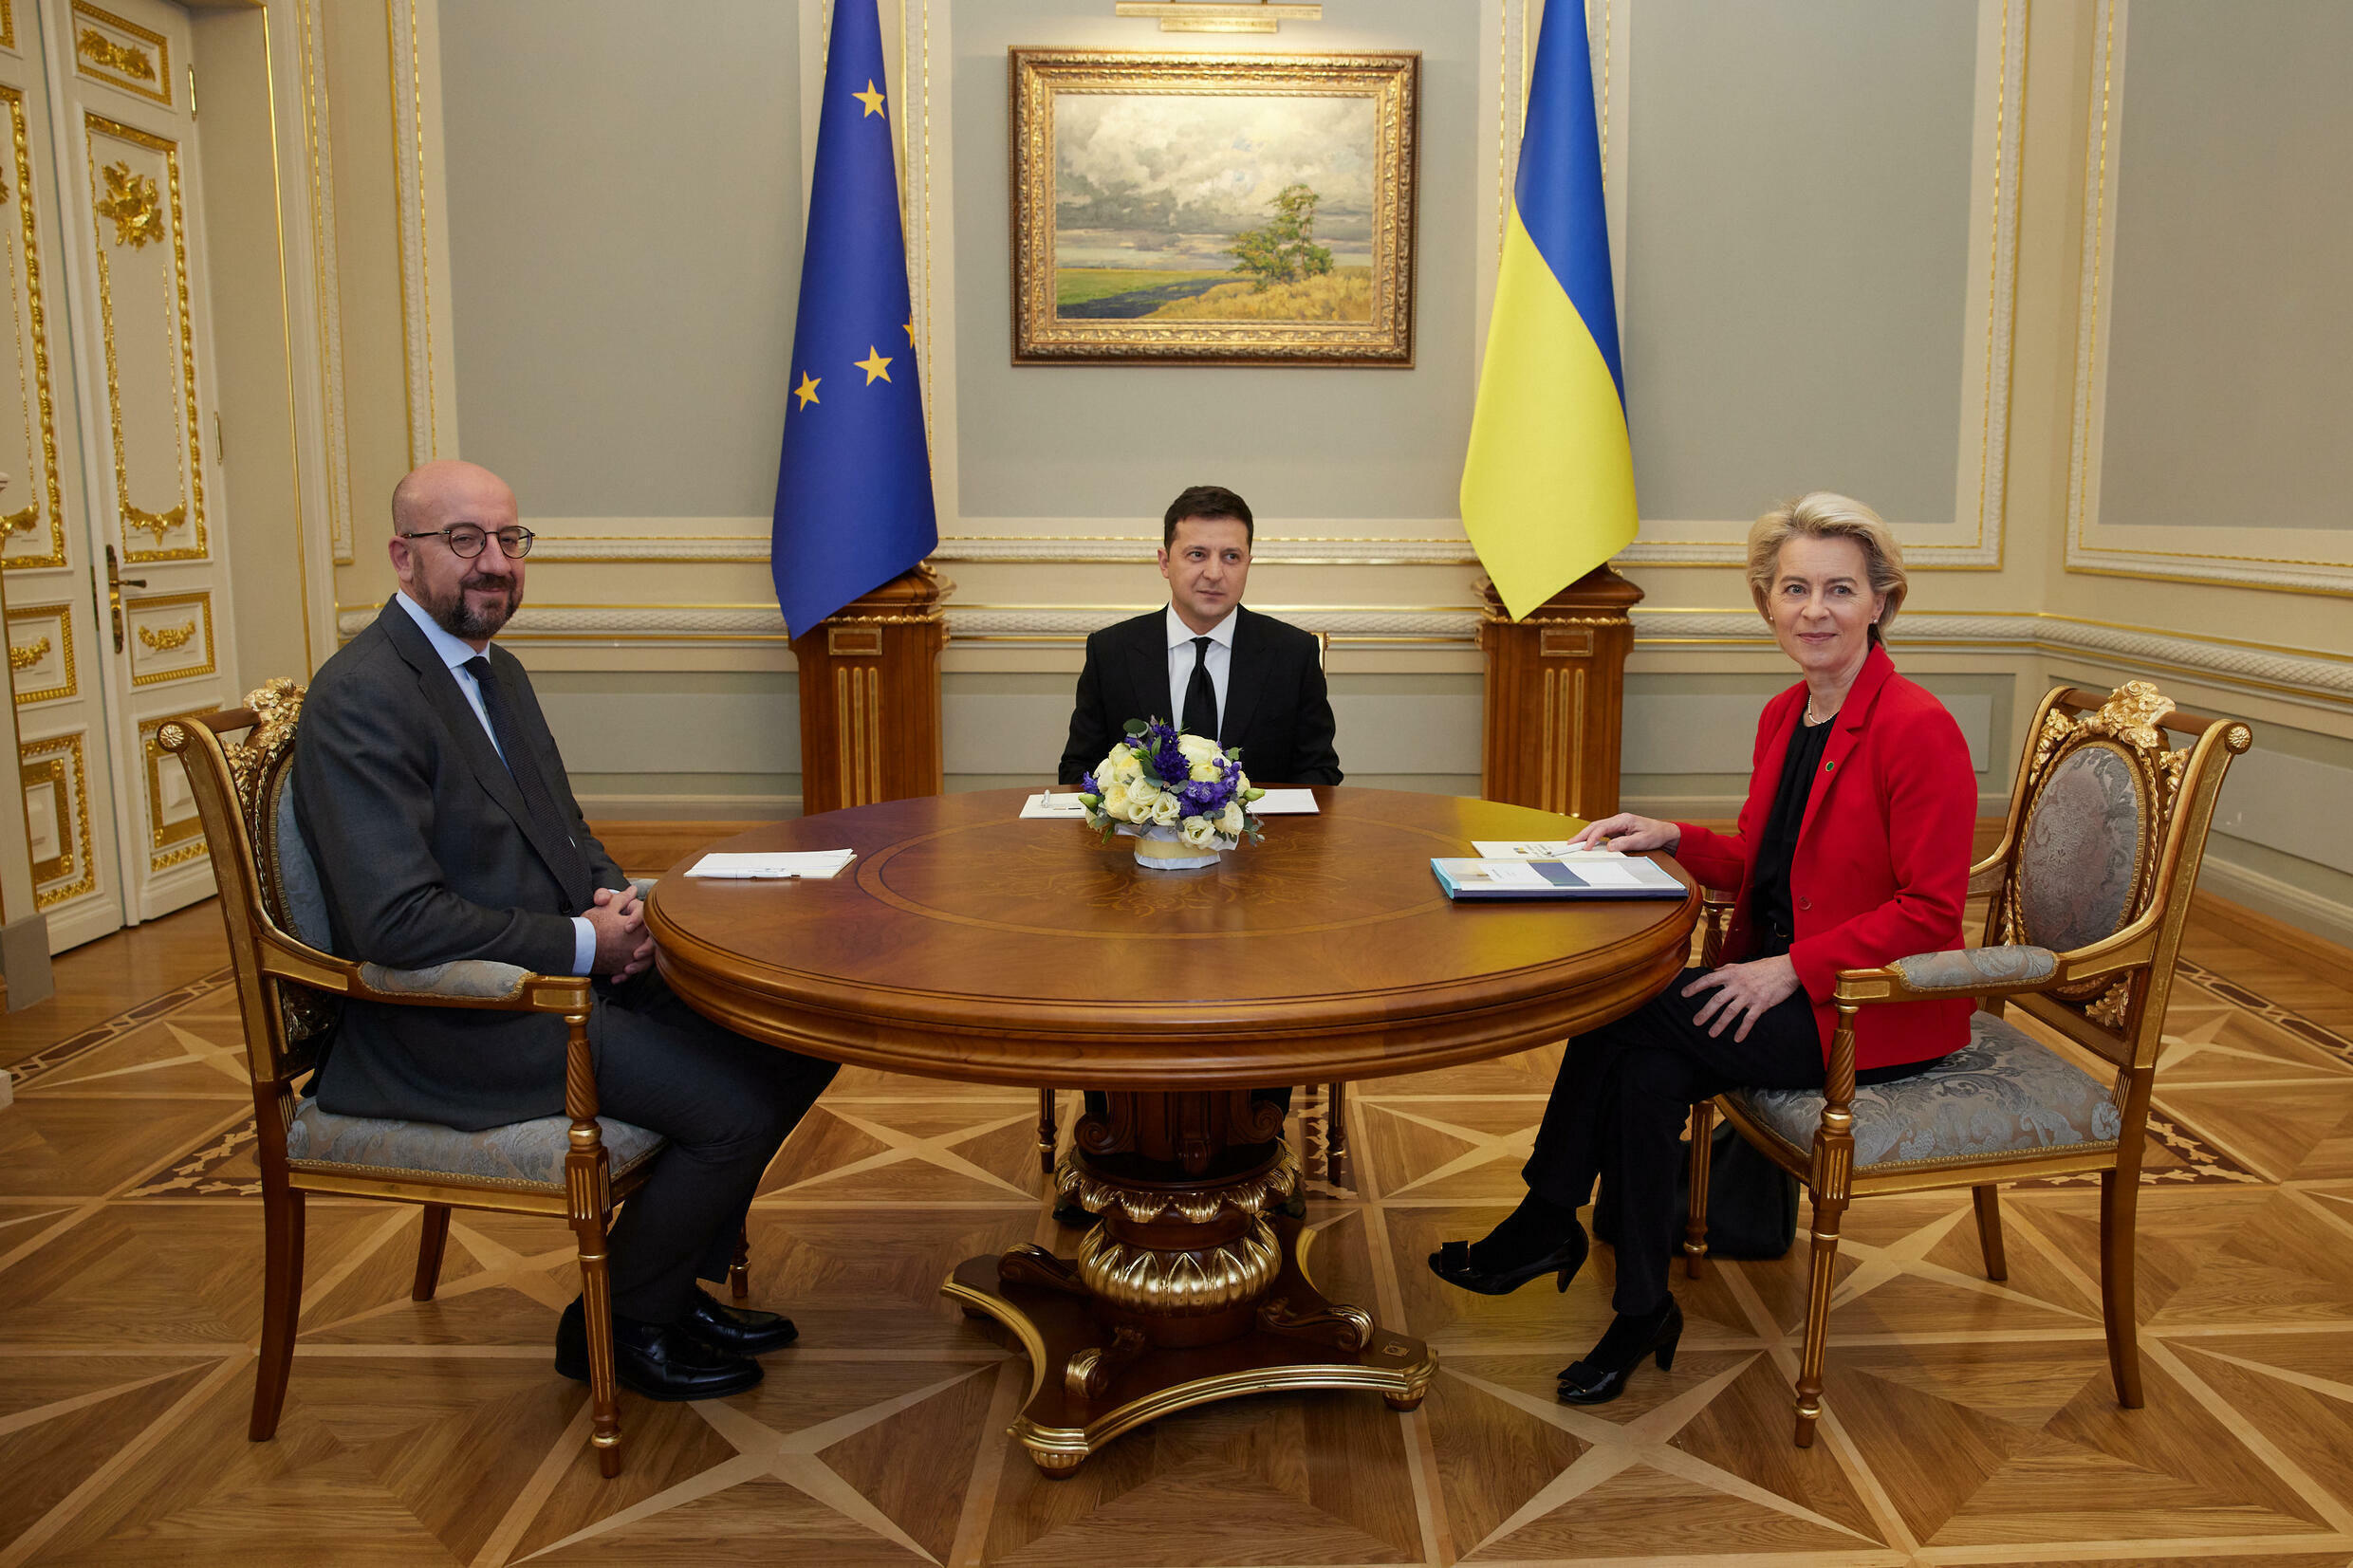 Ukrainian President Volodymyr Zelensky on Tuesday demanded more support from European leaders against Russia but came away from talks with few practical measures